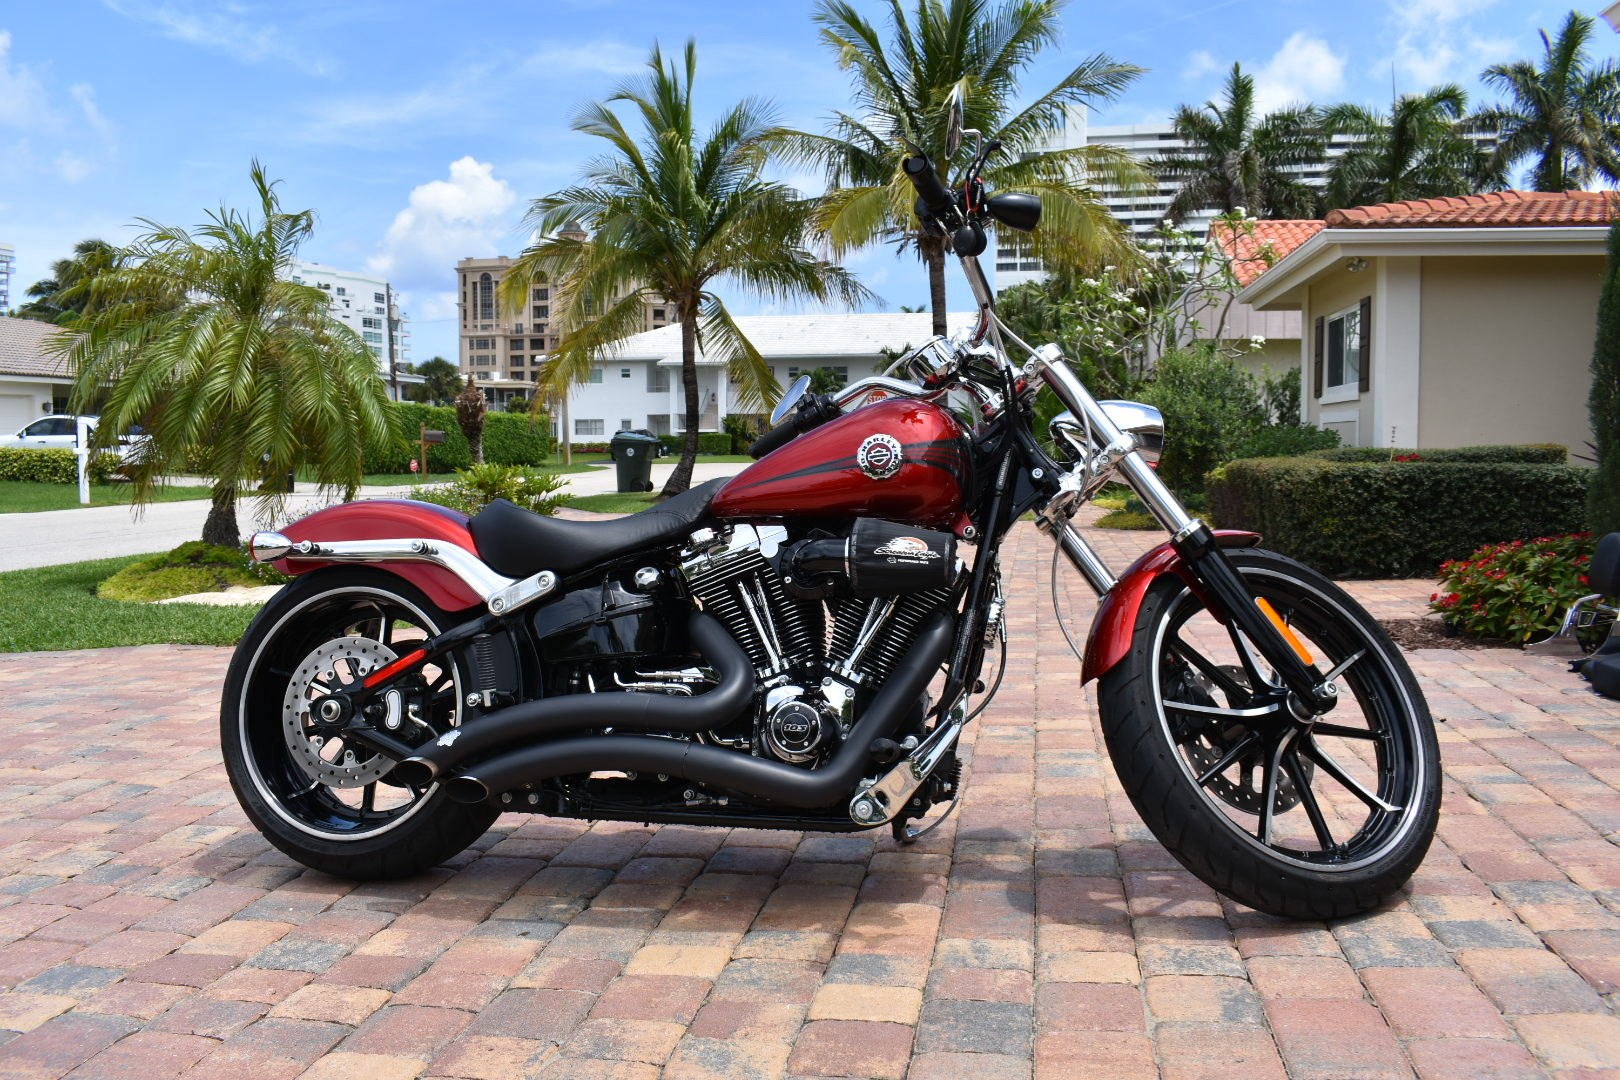 Harley Davidson Dyna Low Rider For Sale San Diego >> All New & Used Harley-Davidson® Softail Breakout® For Sale (709 Bikes, Page 1) | ChopperExchange